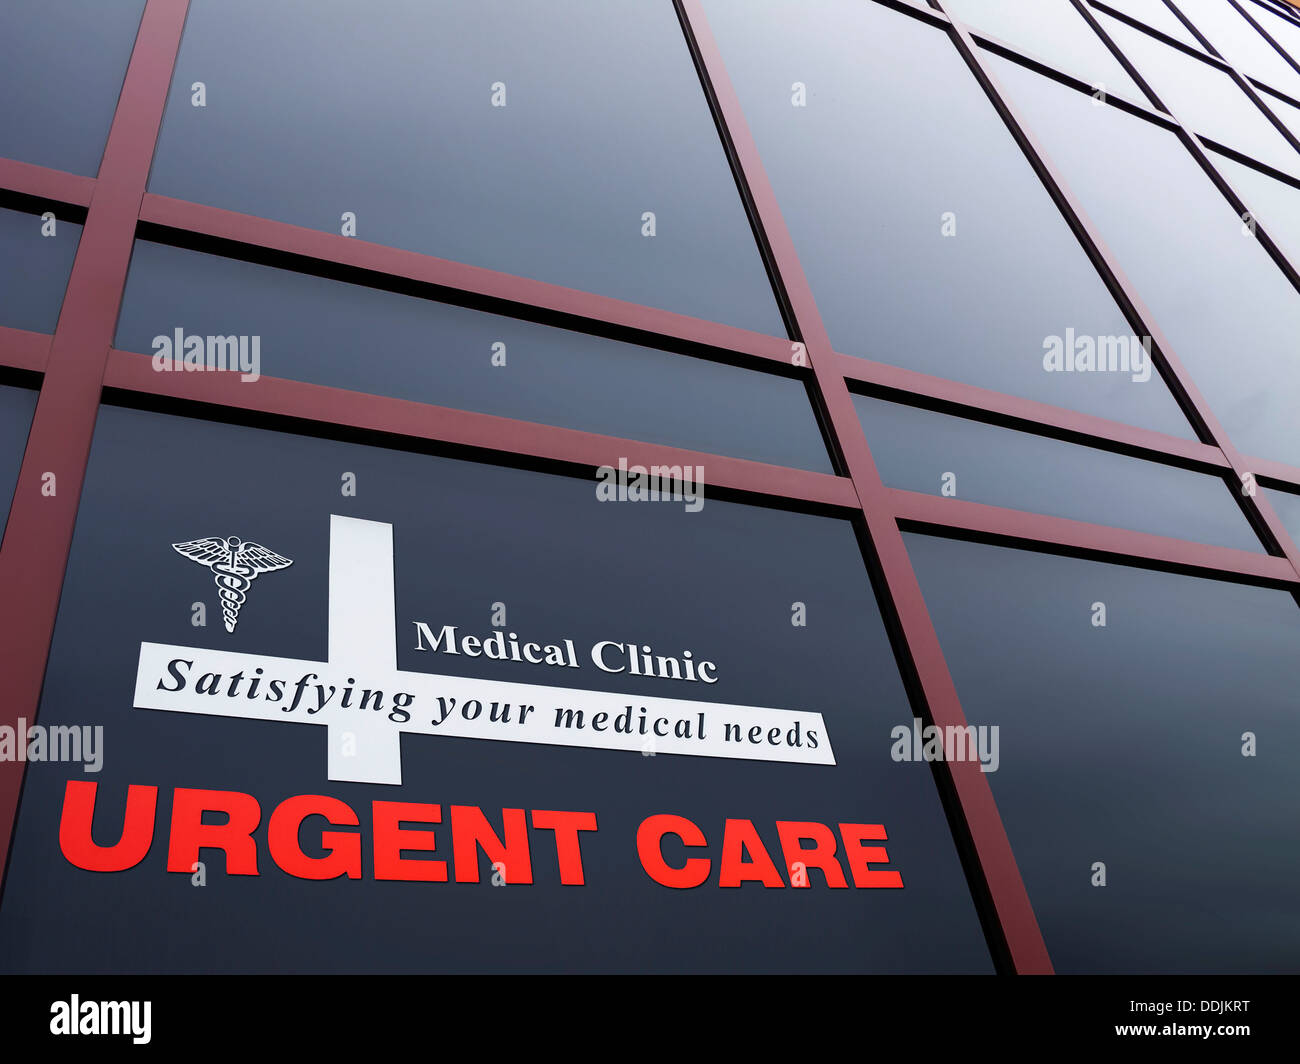 Medical / Urgent care building and identifying sign - Stock Image